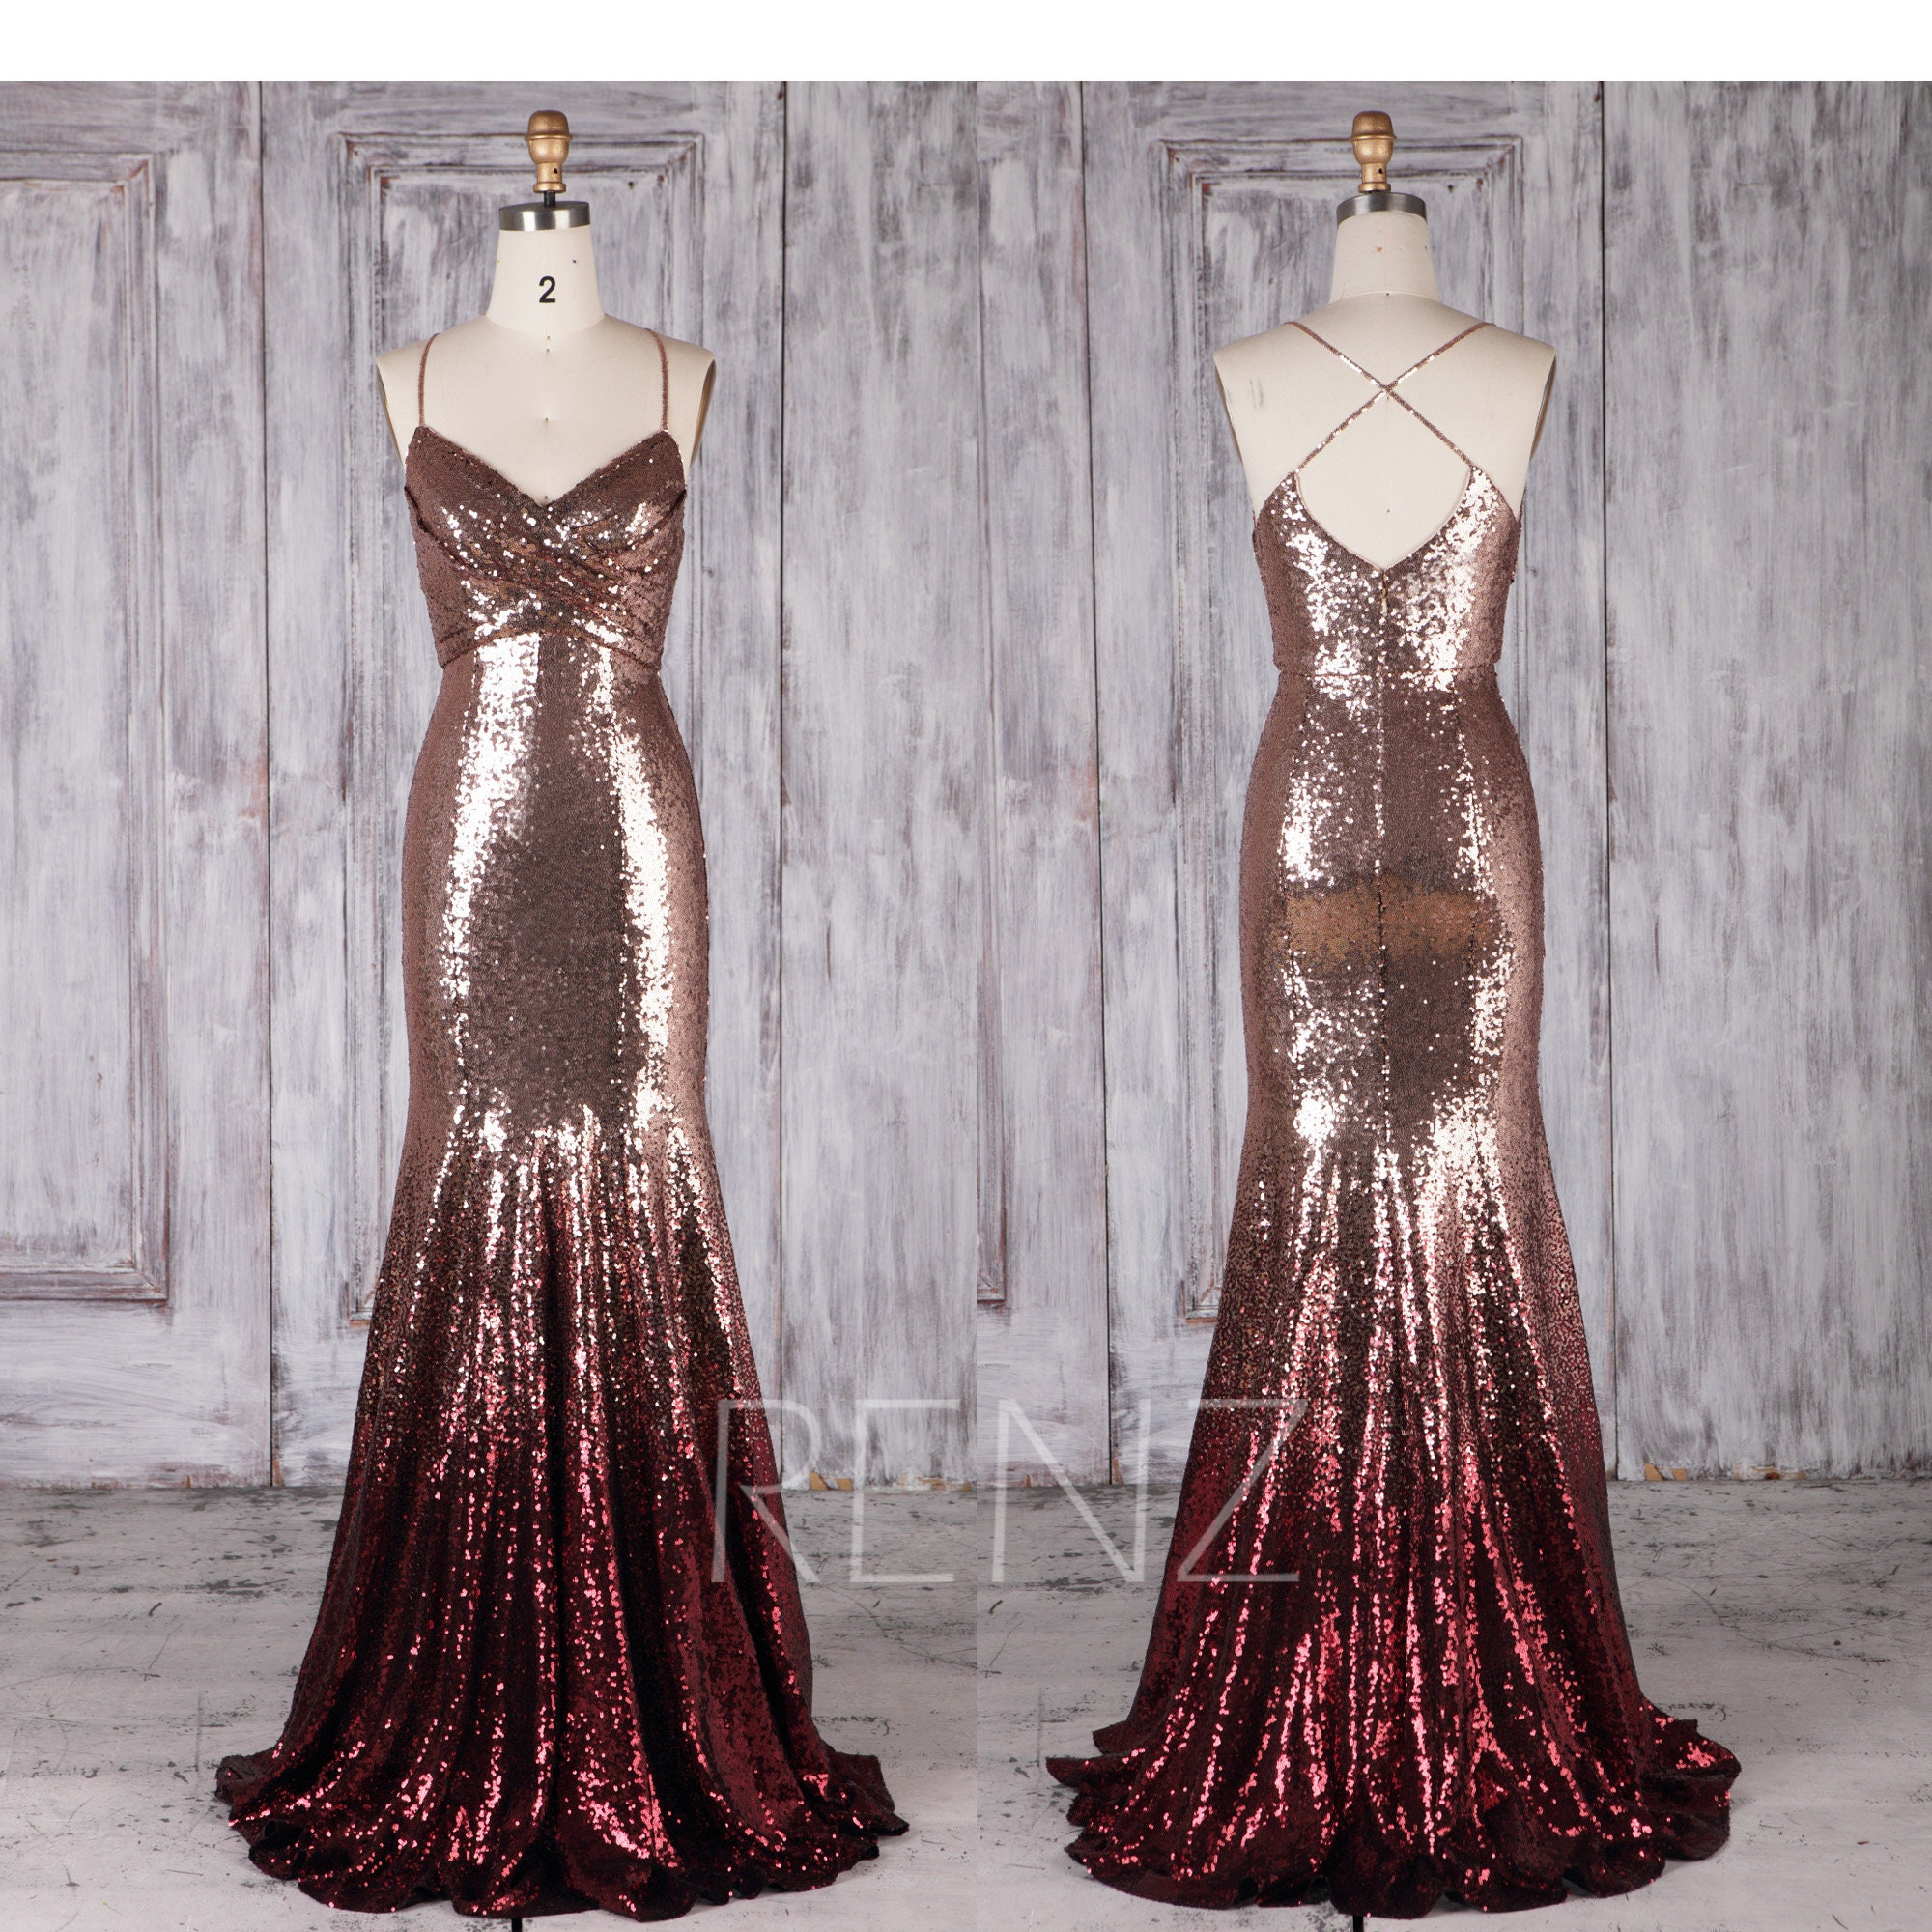 Bridesmaid Dress Rose Gold & Wine Ombre Sequin